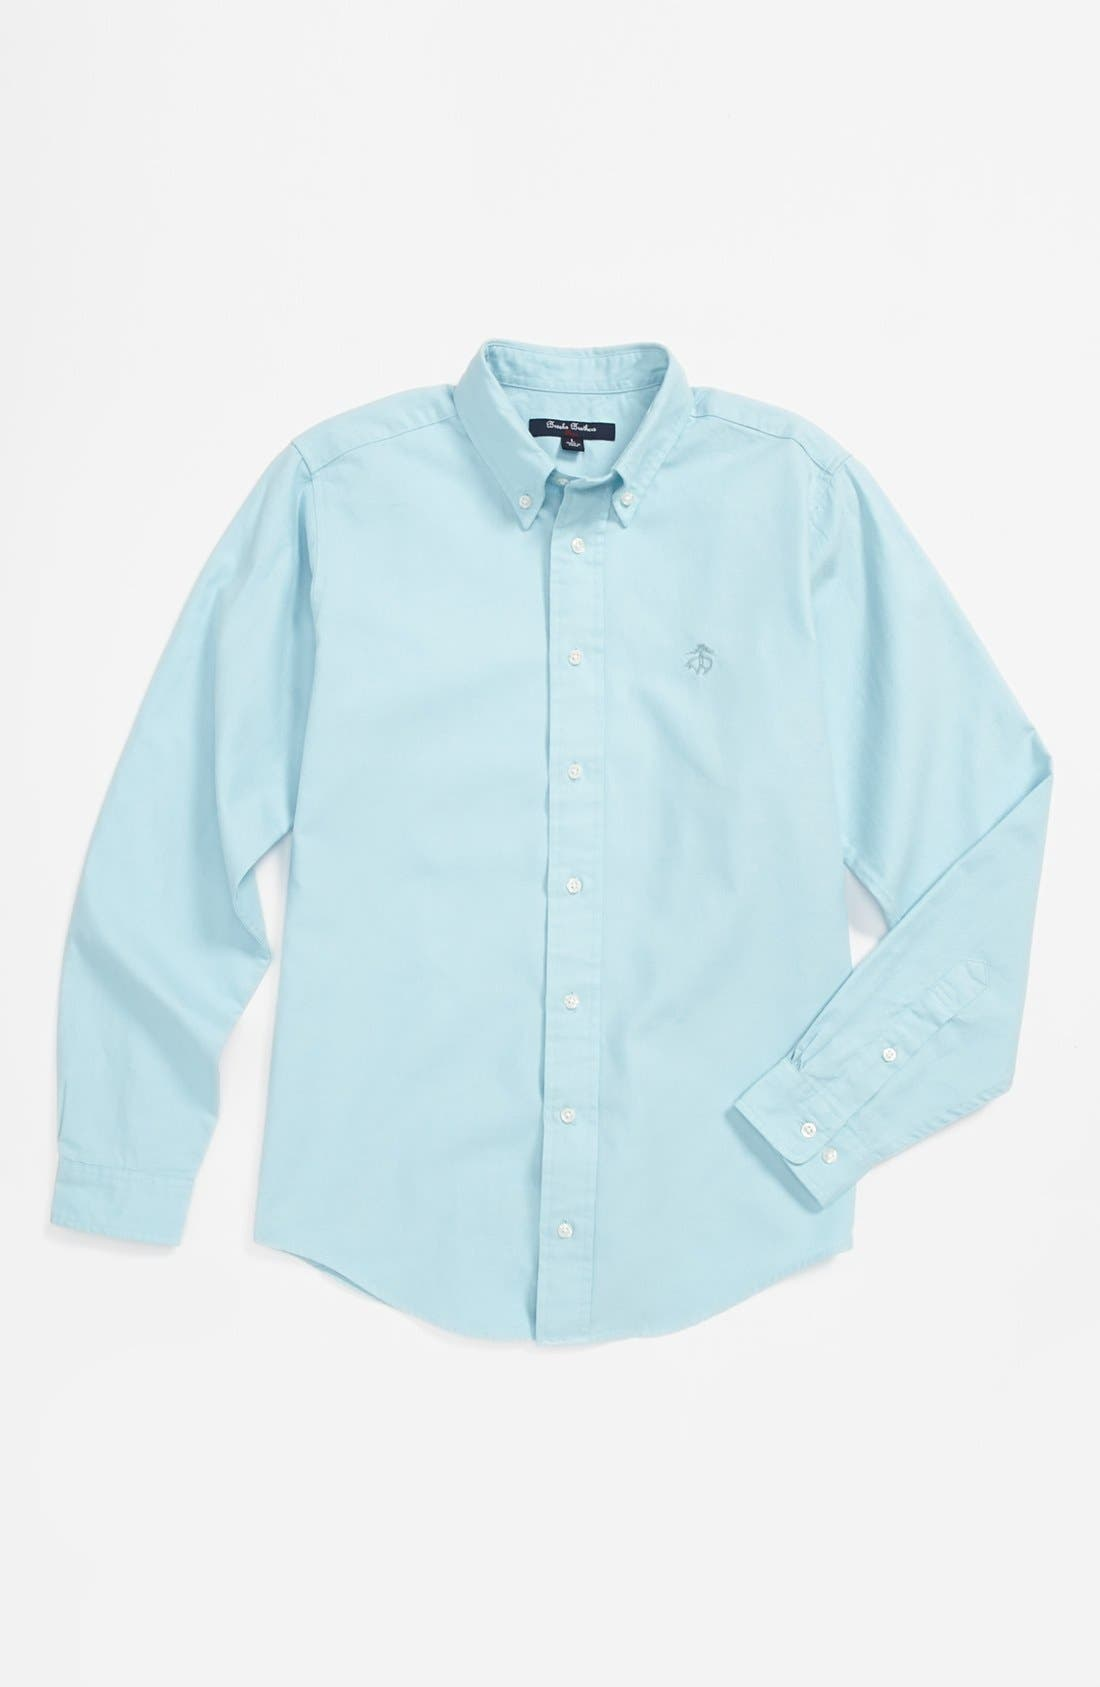 Alternate Image 1 Selected - Brooks Brothers Oxford Woven Shirt (Big Boys)